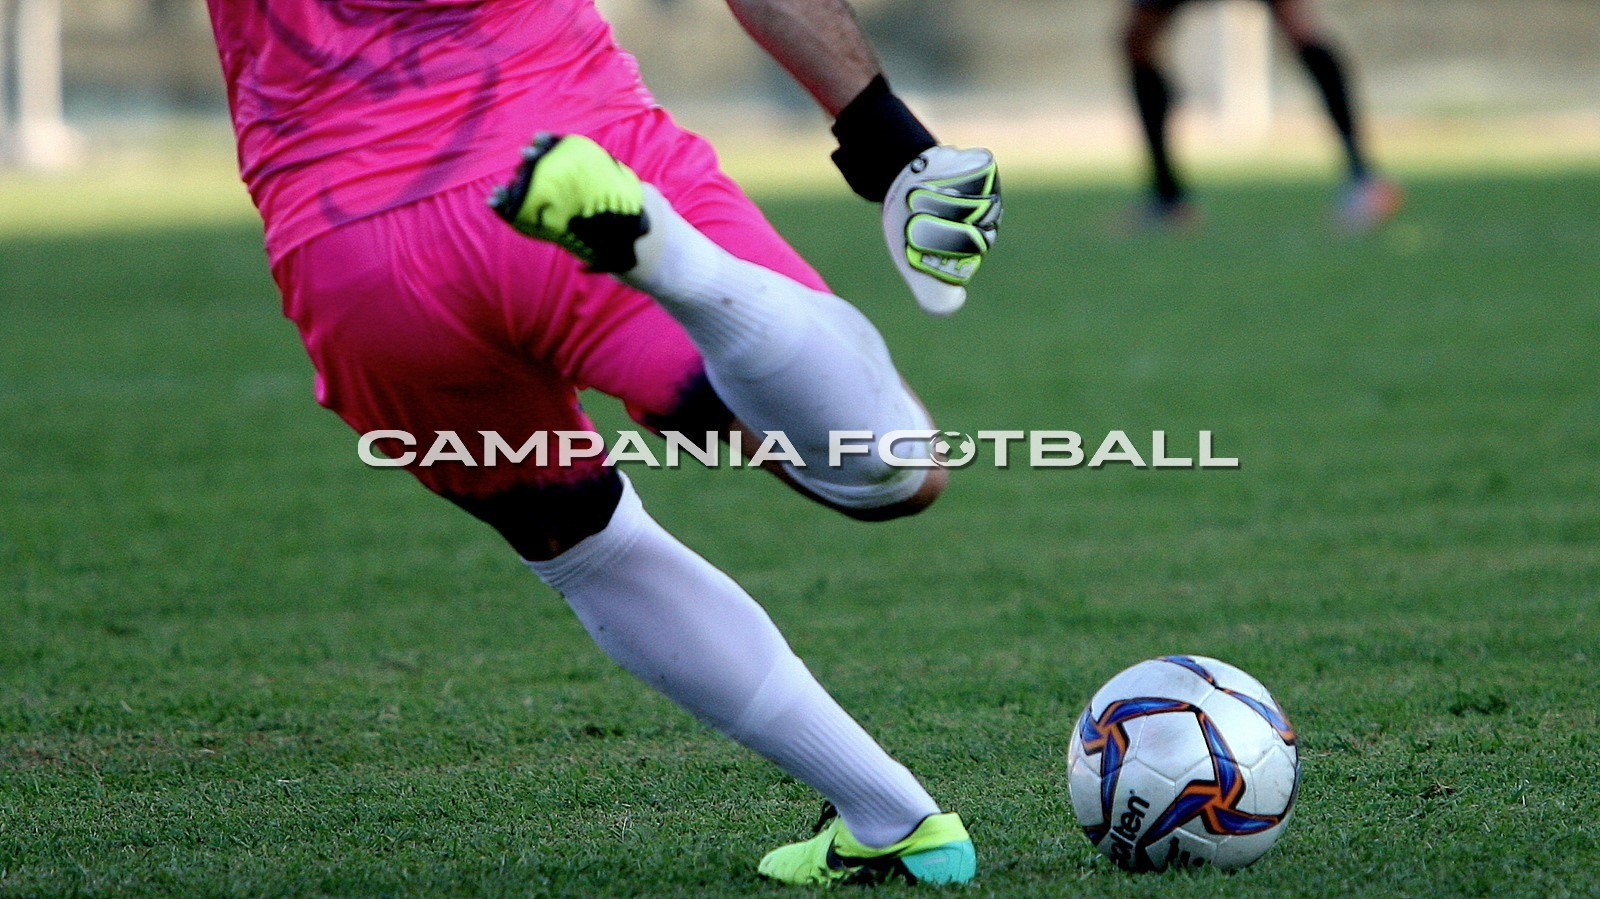 Juniores Girone B, 1^ Giornata: risultati finali e classifica